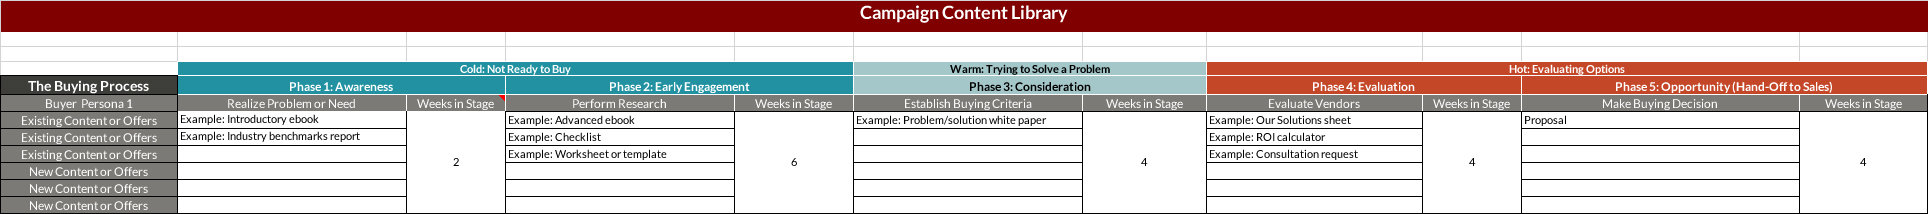 JONESBlog-feb20-20-lead-nurturing-template-content-library